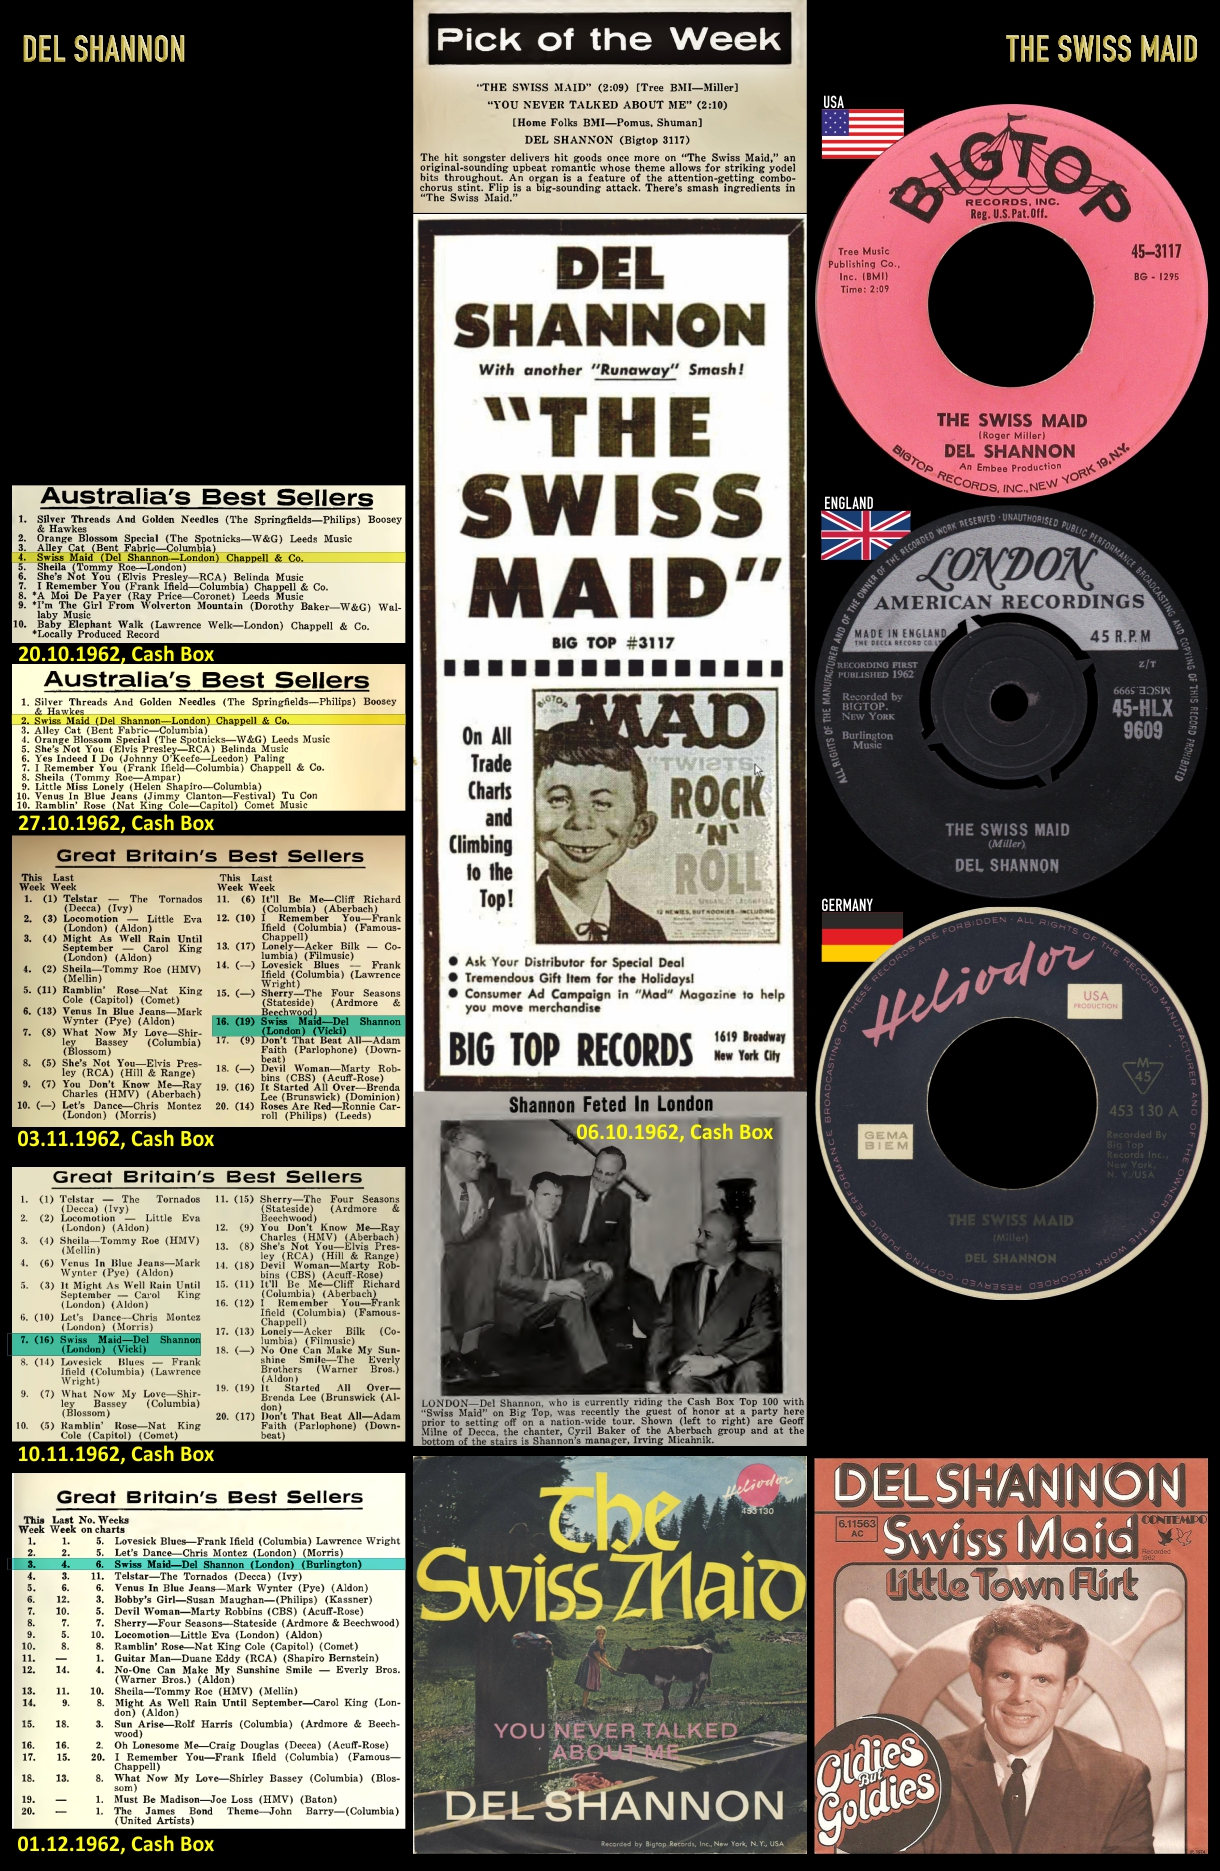 620825_Del Shannon_The Swiss Maid